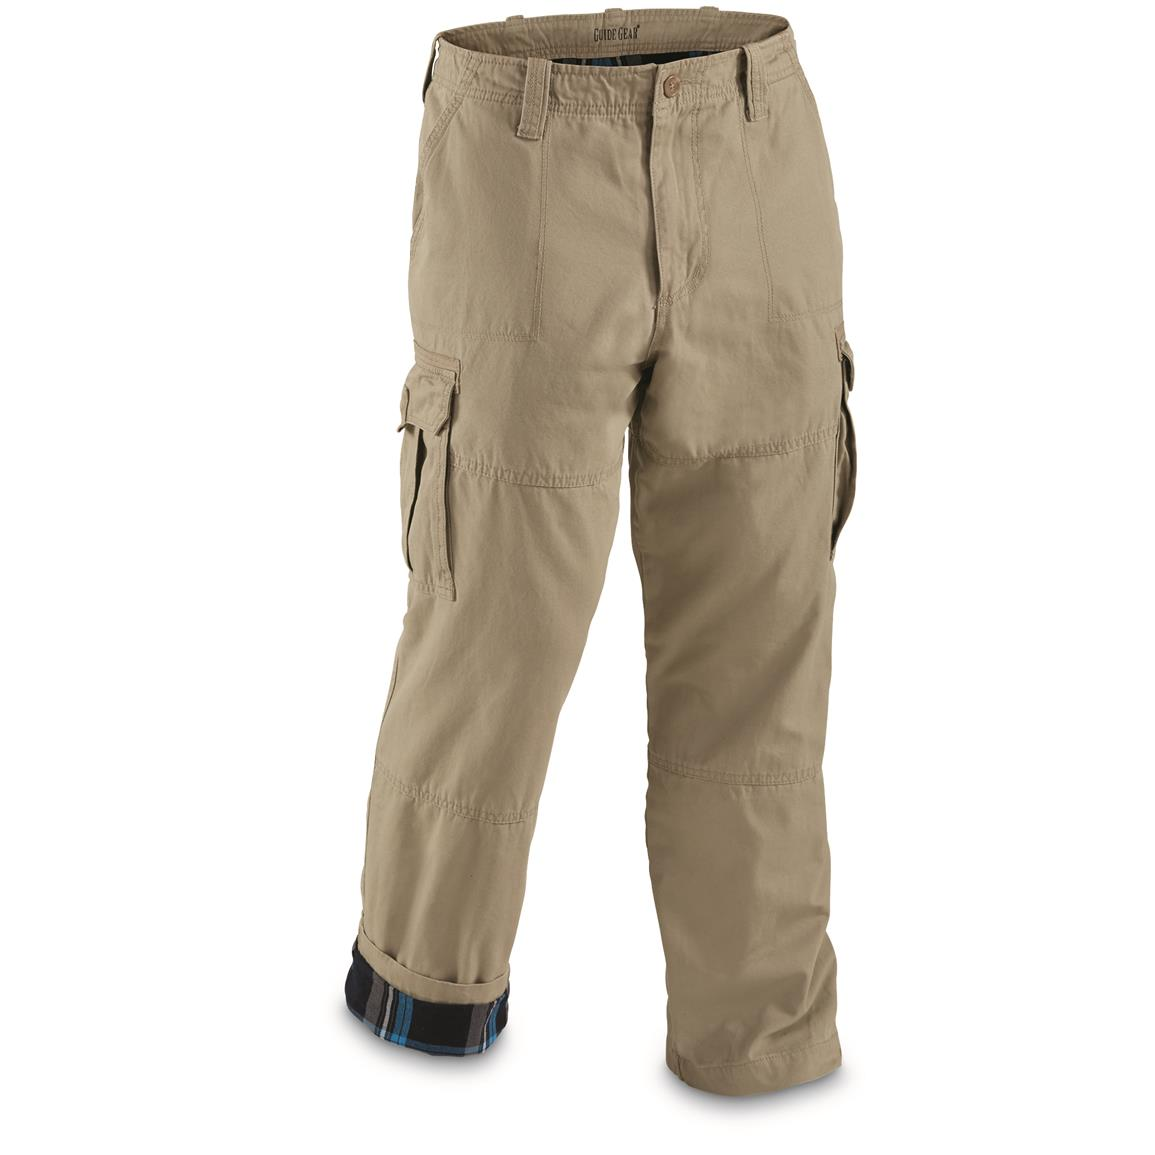 guide gear menu0027s flannel lined cargo pants, khaki - toasty-warm flannel dgfpvbo